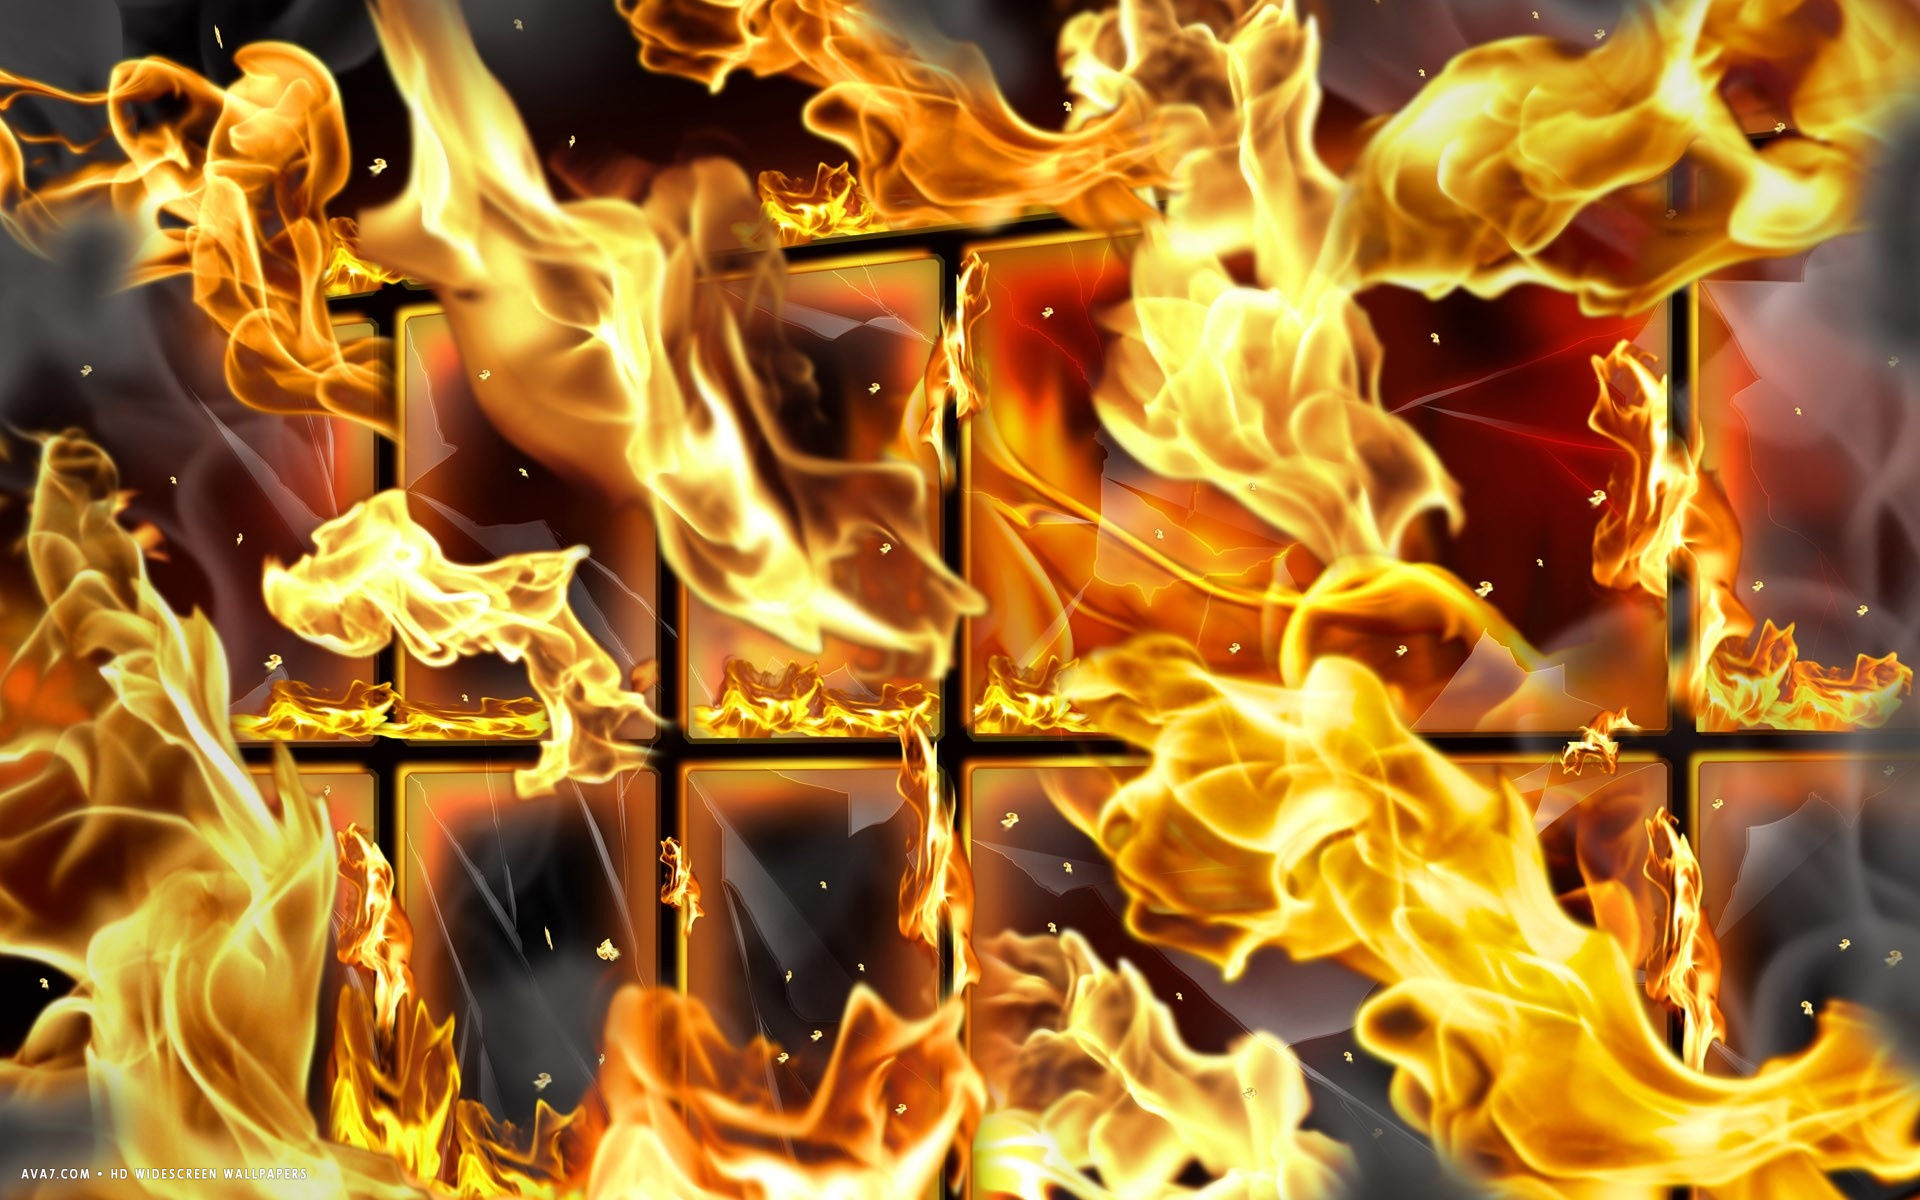 3d flames abstract grid cage window fire hd widescreen wallpaper